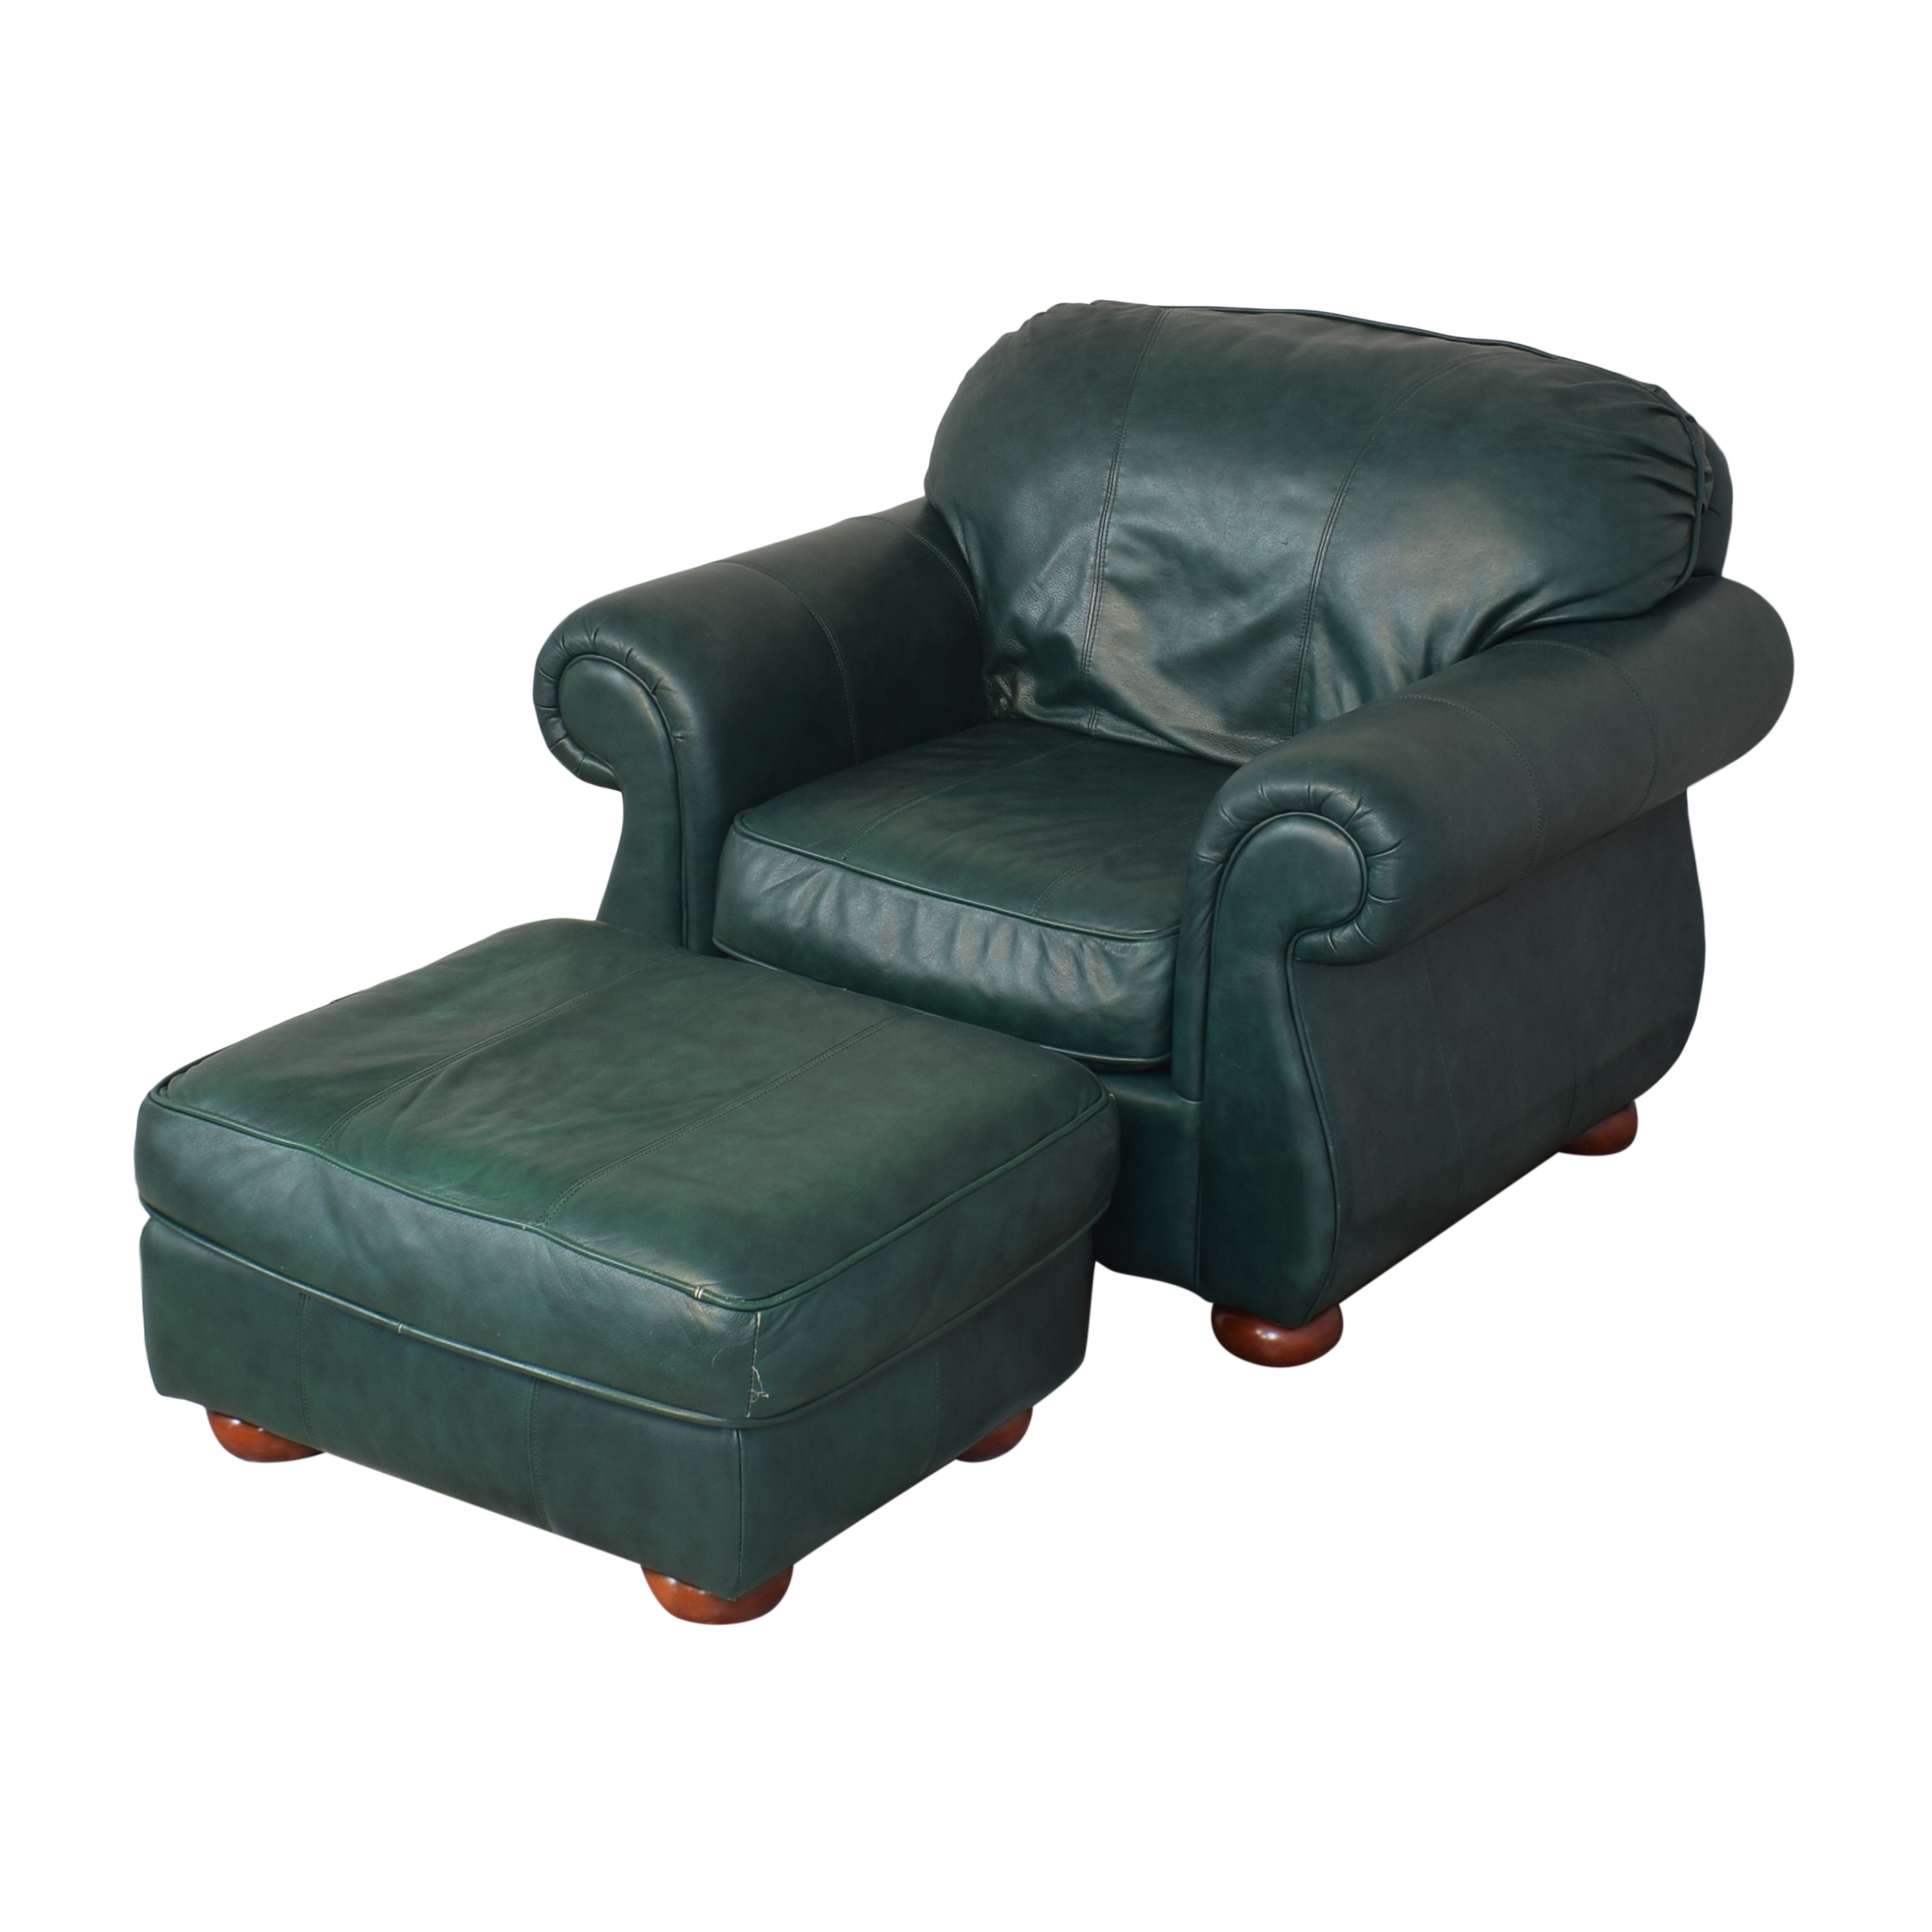 Drexel Drexel Studio Chair with Ottoman Accent Chairs